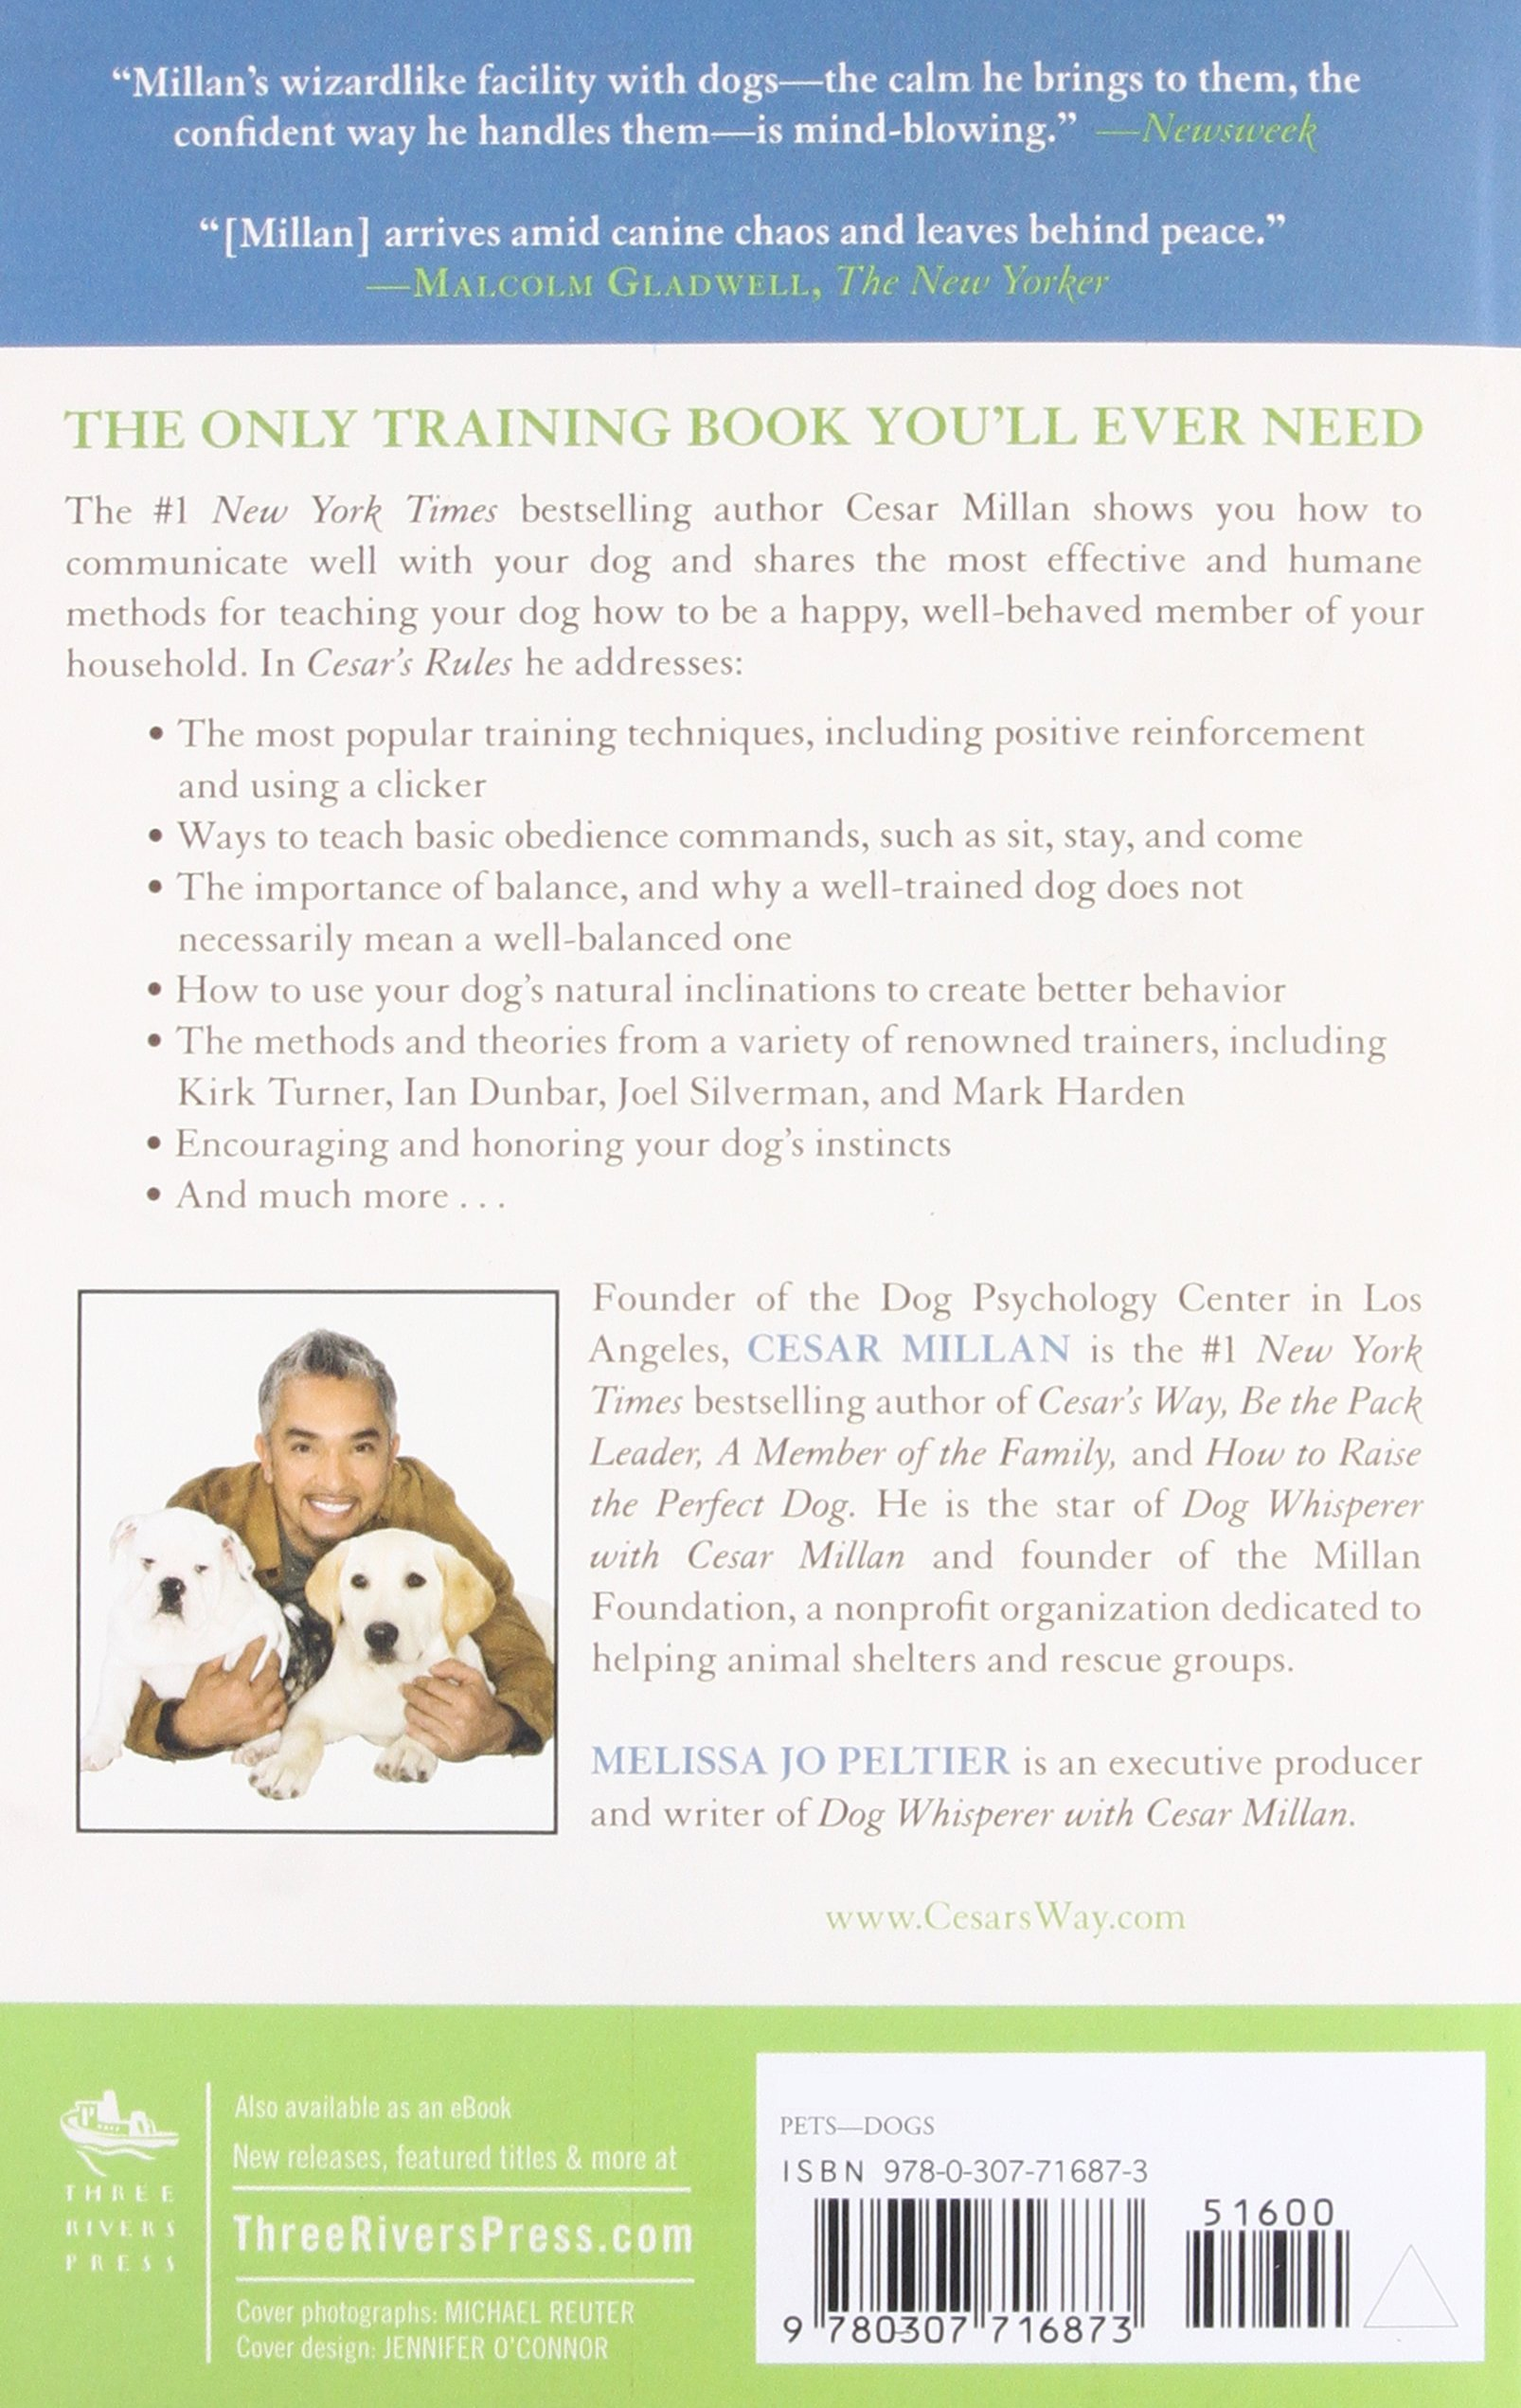 Cesar's Rules: Your Way to Train a Well-Behaved Dog by Three Rivers Press (Image #2)